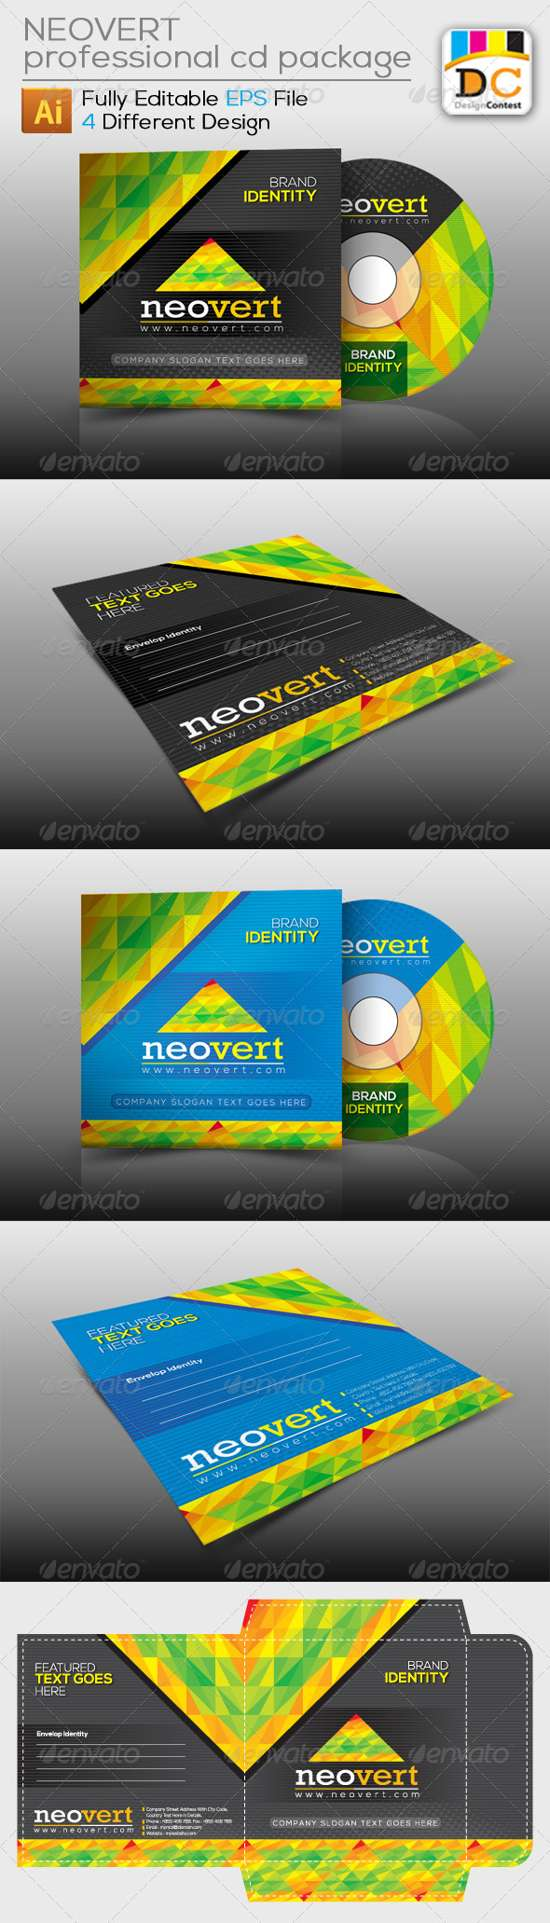 cd sleeve packaging template